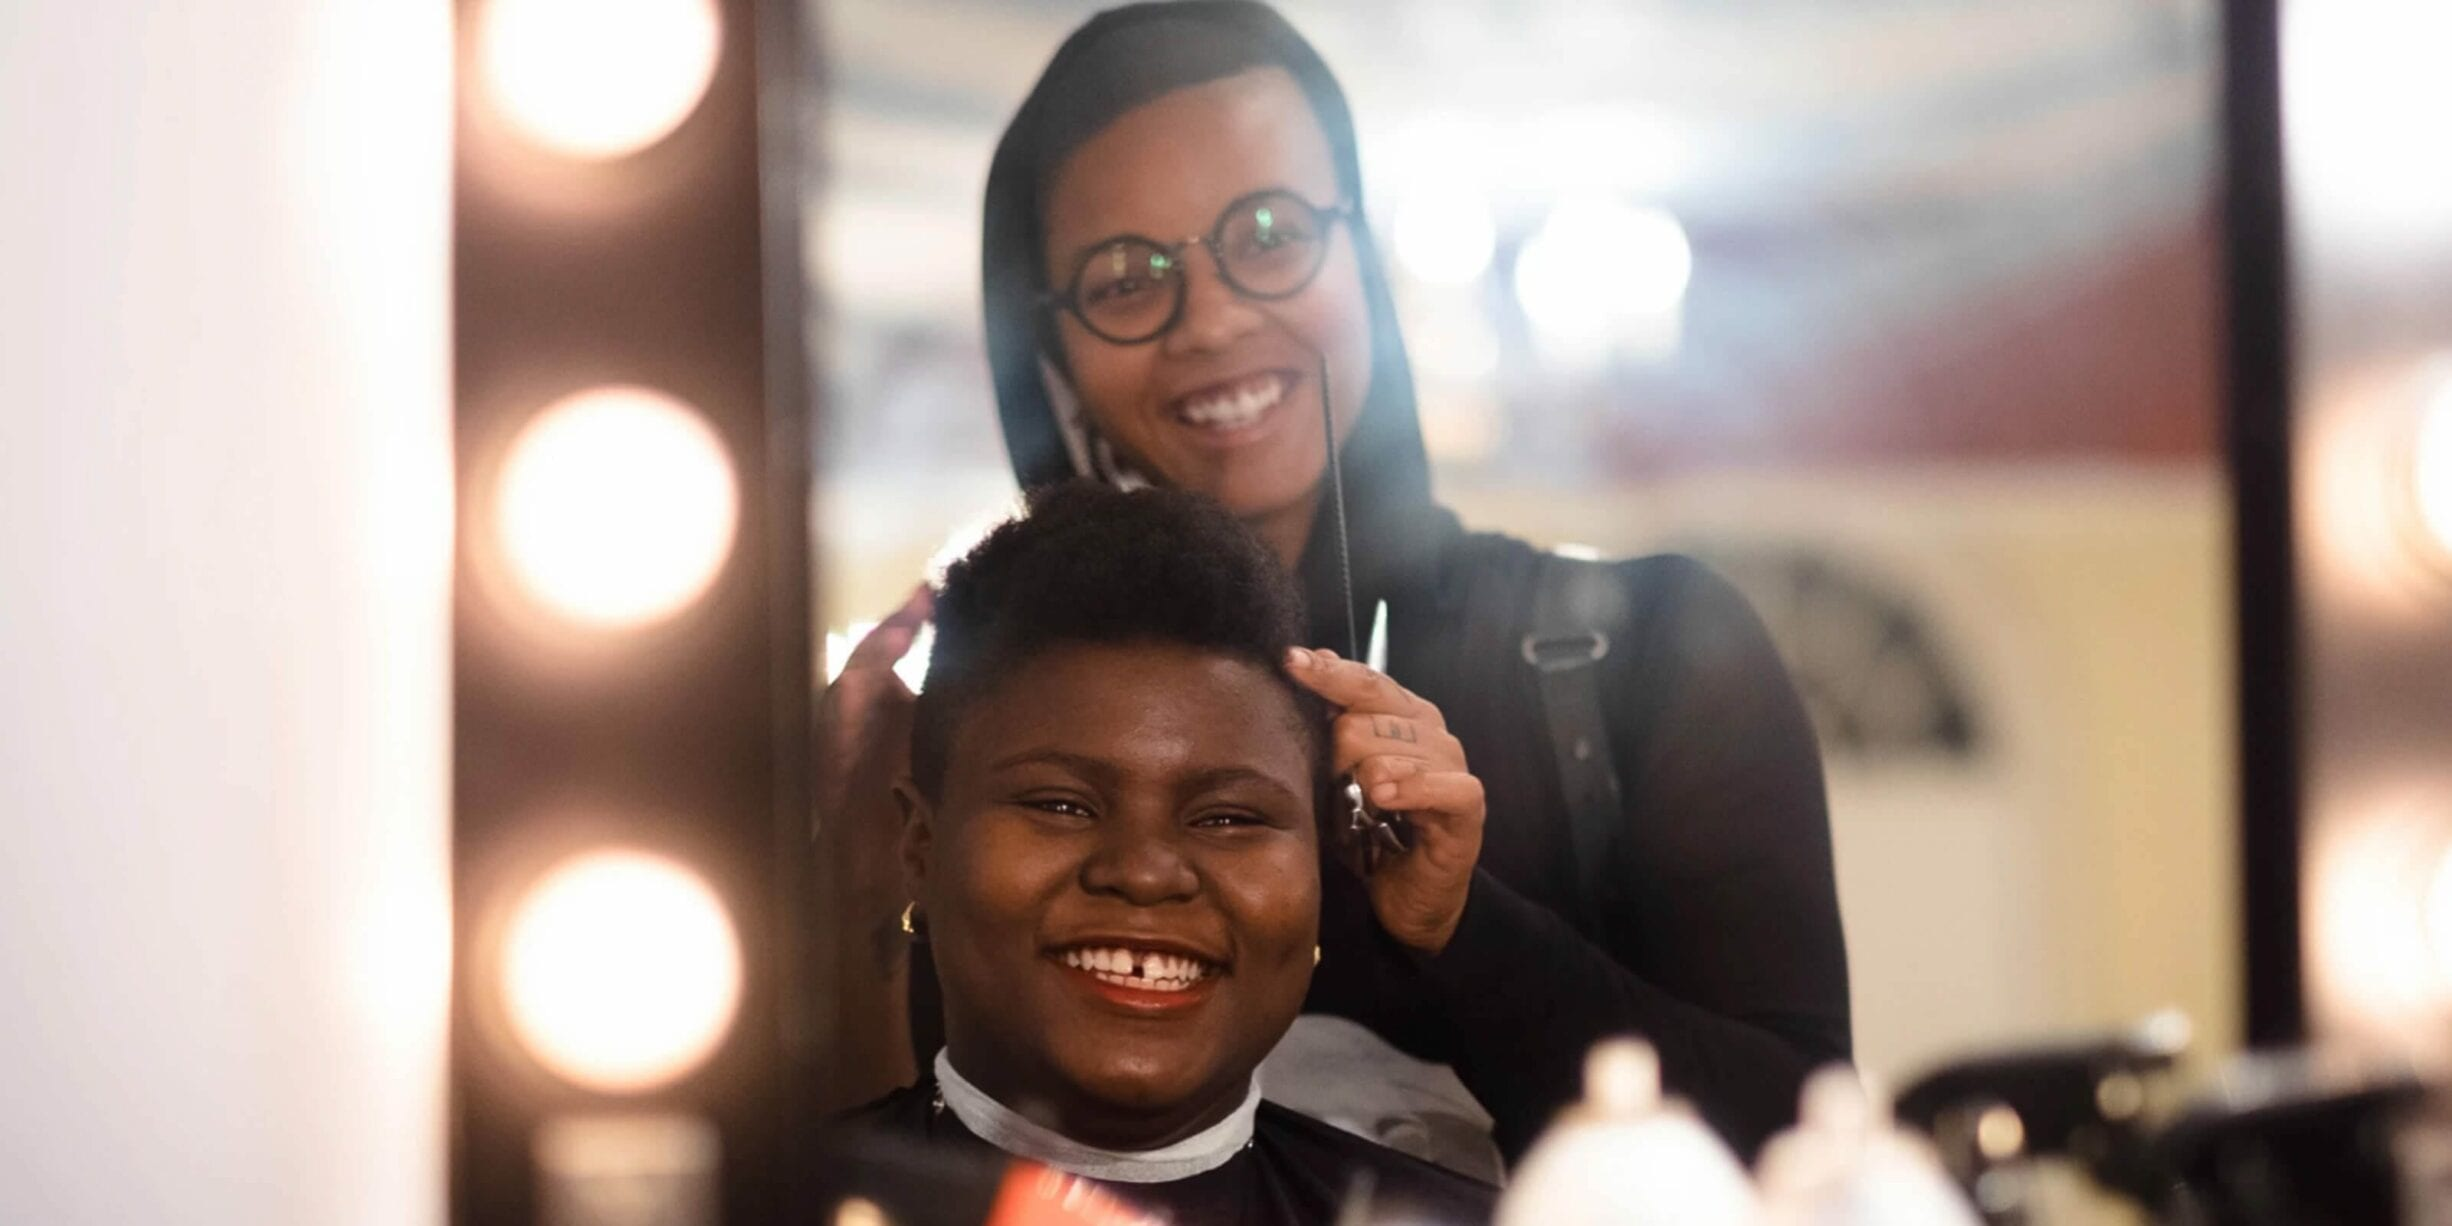 madin lopez giving haircut to young black LGBTQ person